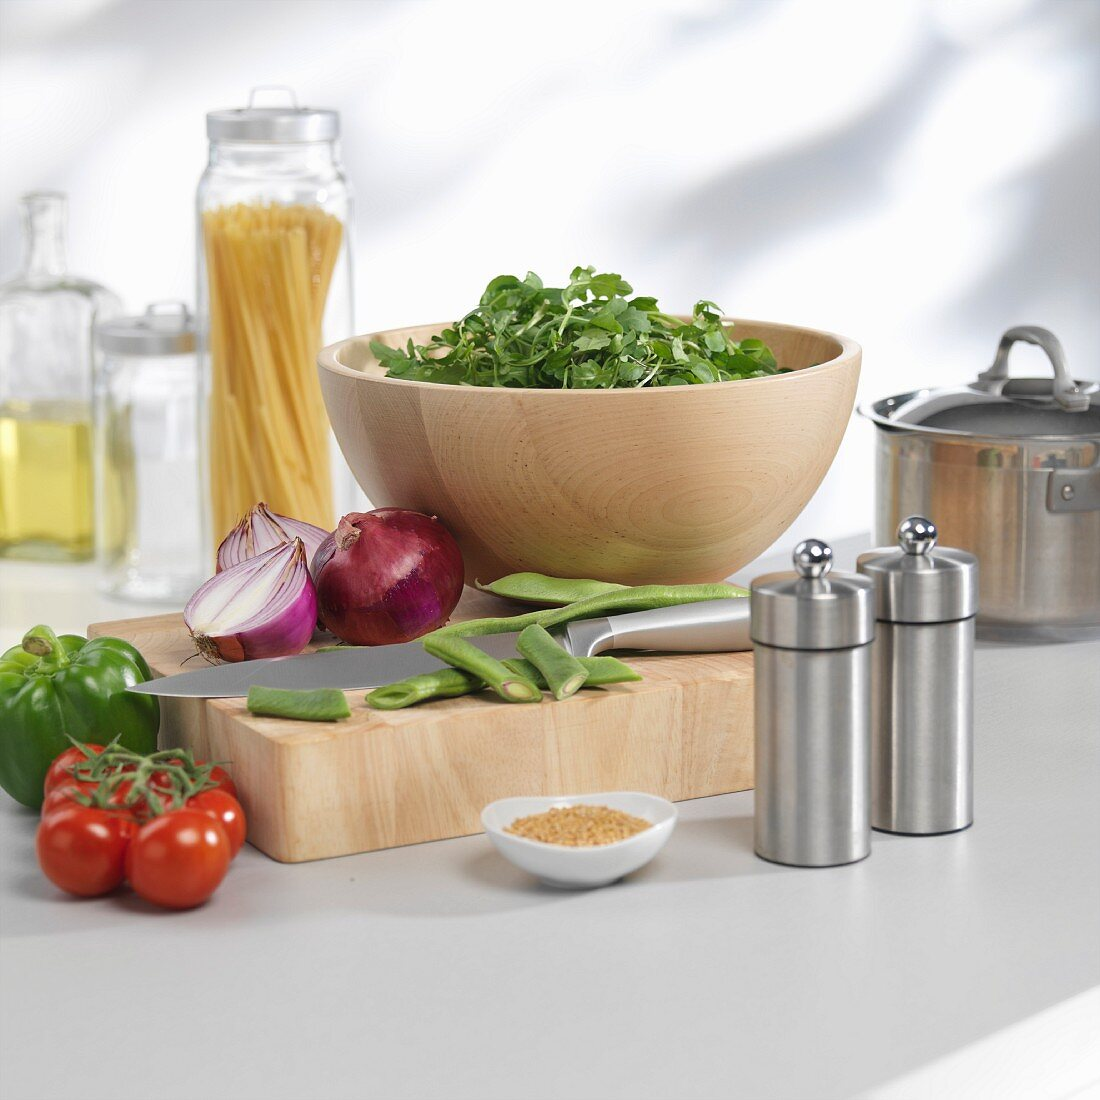 A bowl of lettuce and vegetables on a chopping board